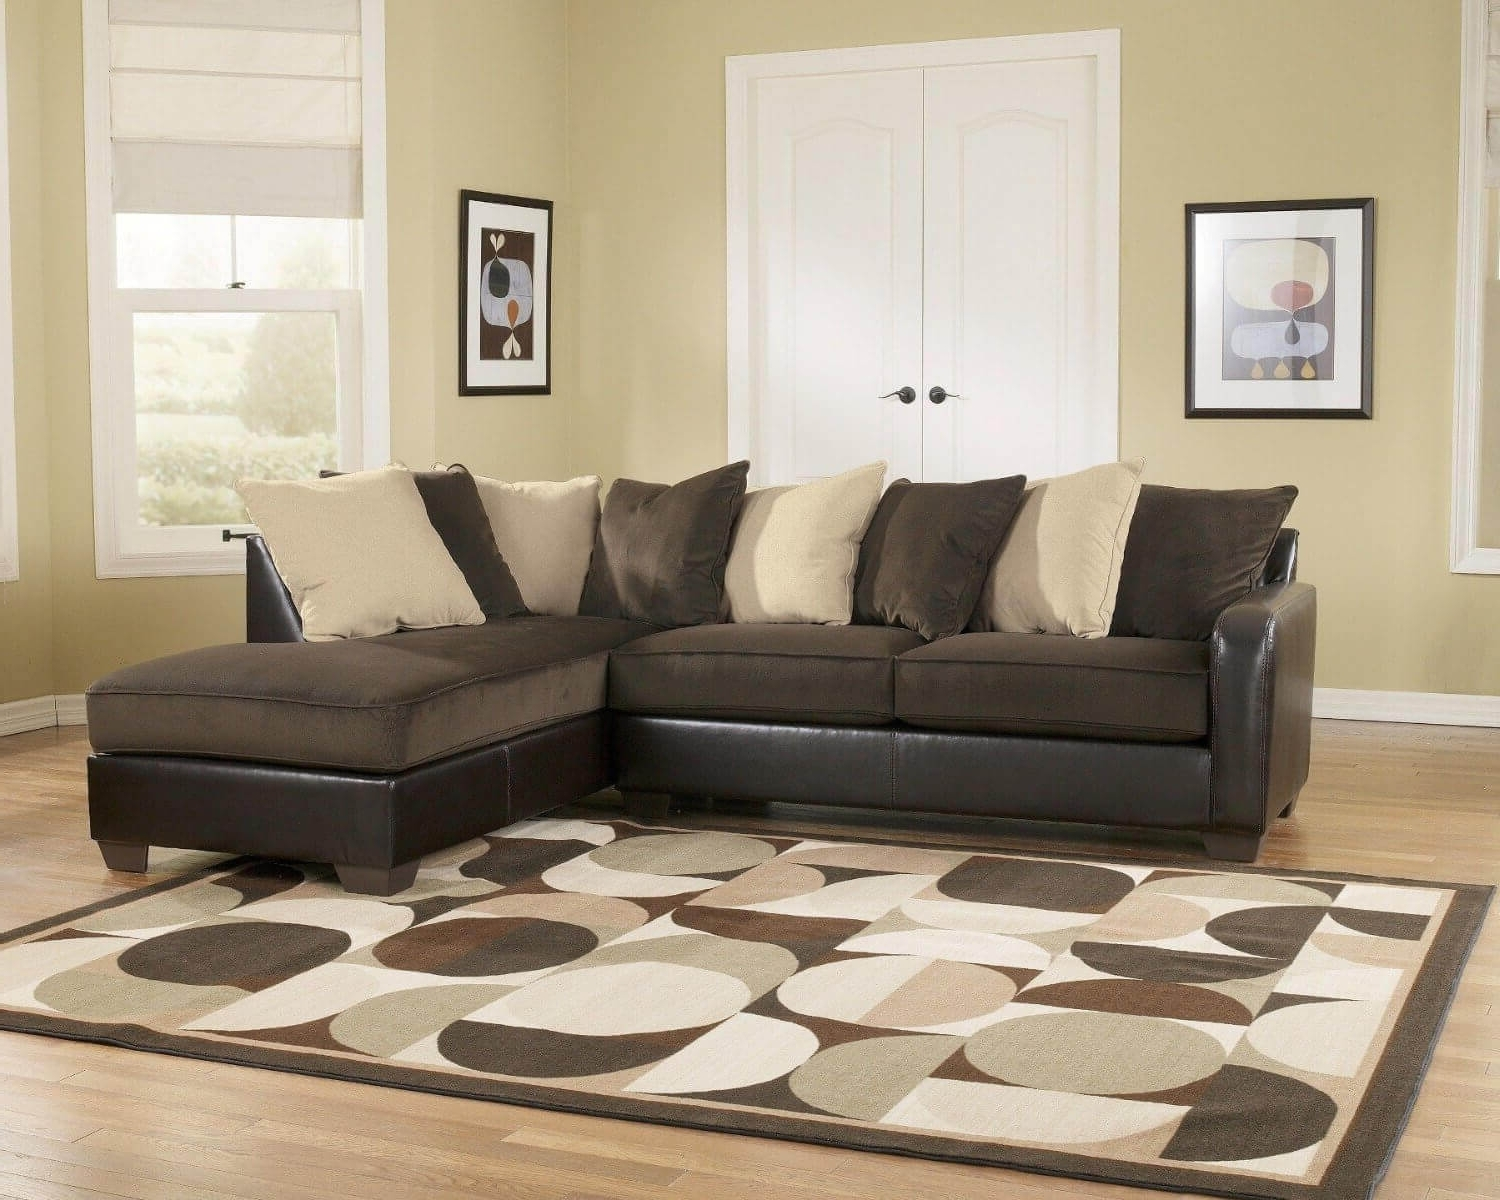 Sectional Sofas Under 1000 Inside Well Known 100 Awesome Sectional Sofas Under $1,000 (2018) (View 3 of 20)